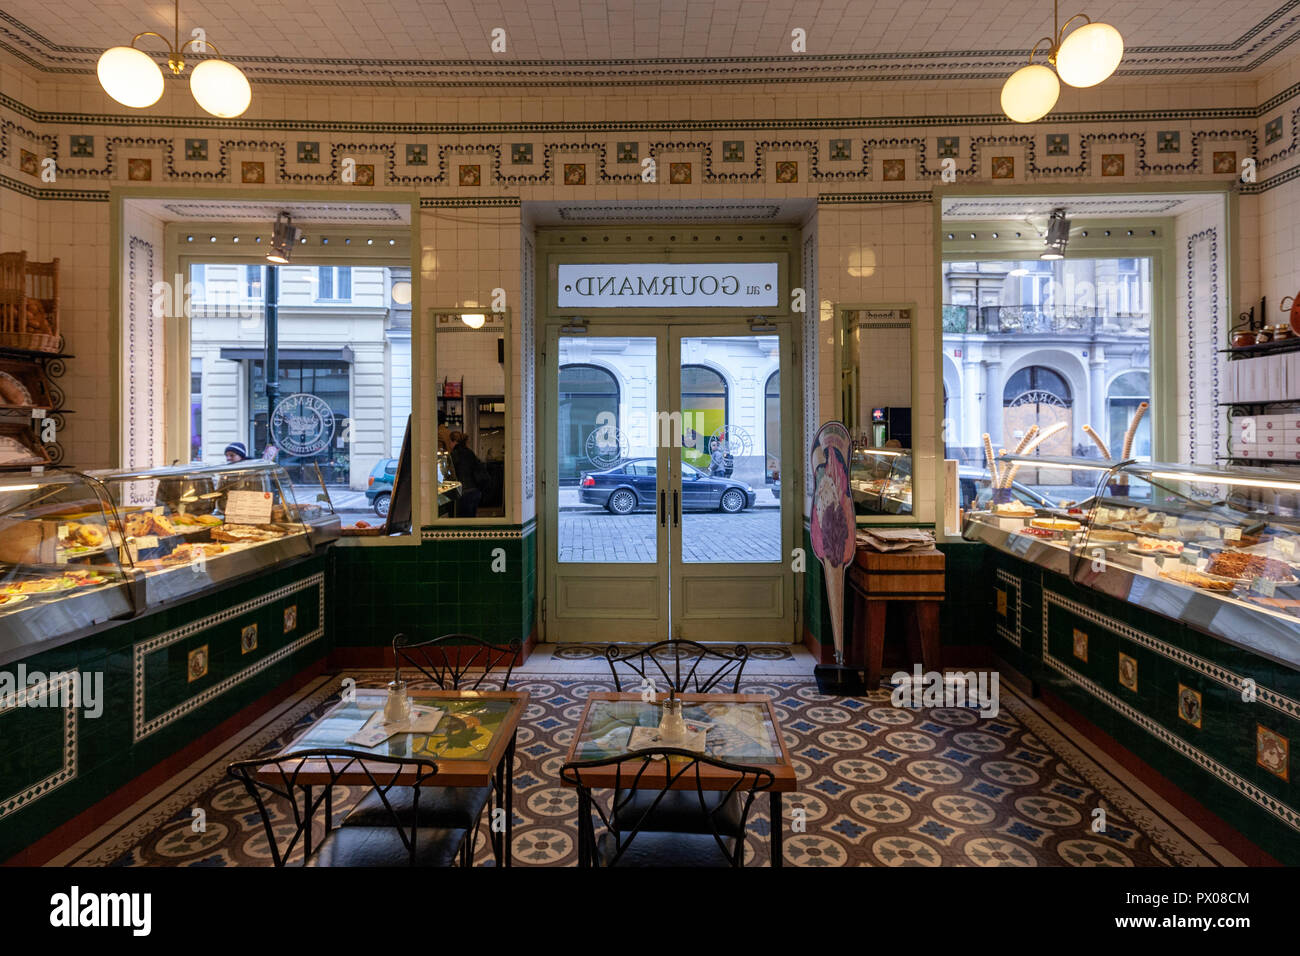 Interior of the au Gourmand, Bohemian style deco, Bakeries in Dlouha 614/10, Prague, Czech Republic. - Stock Image